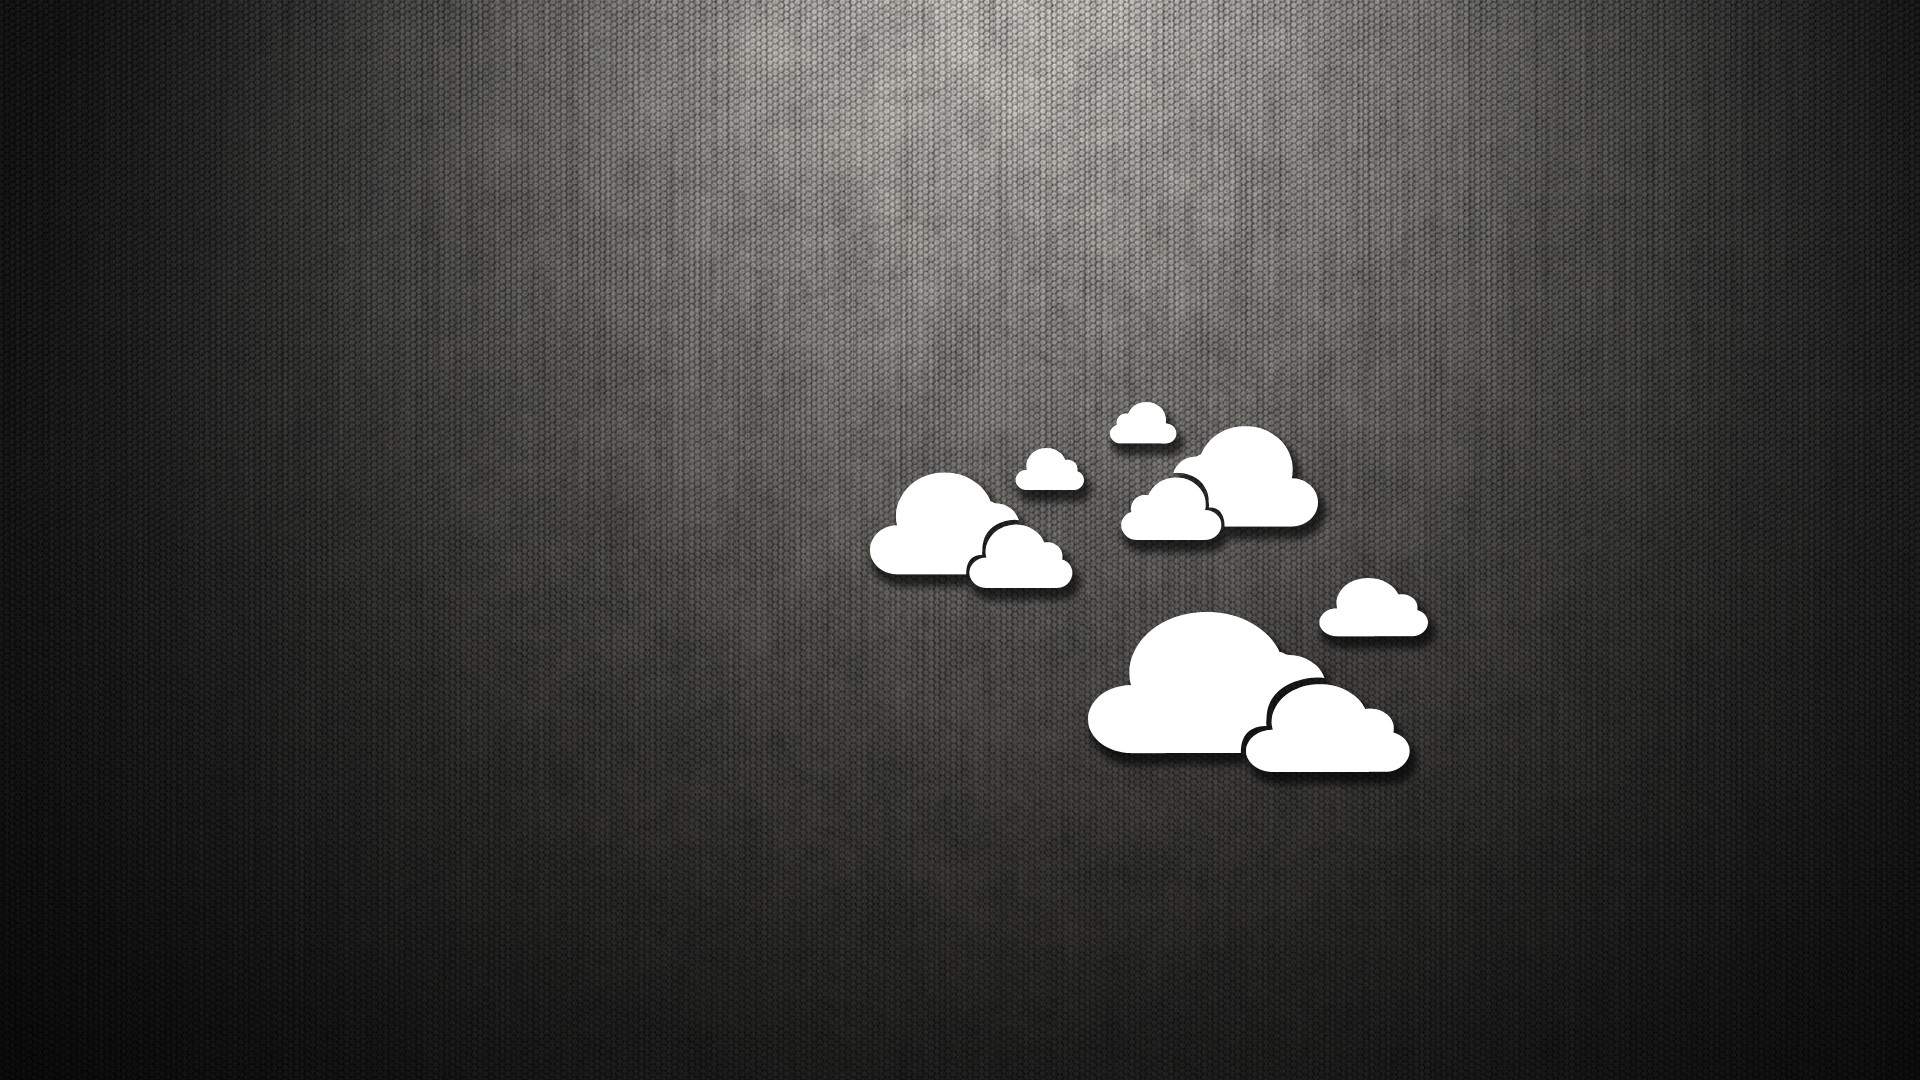 clouds hd wallpaper minimalist - photo #15